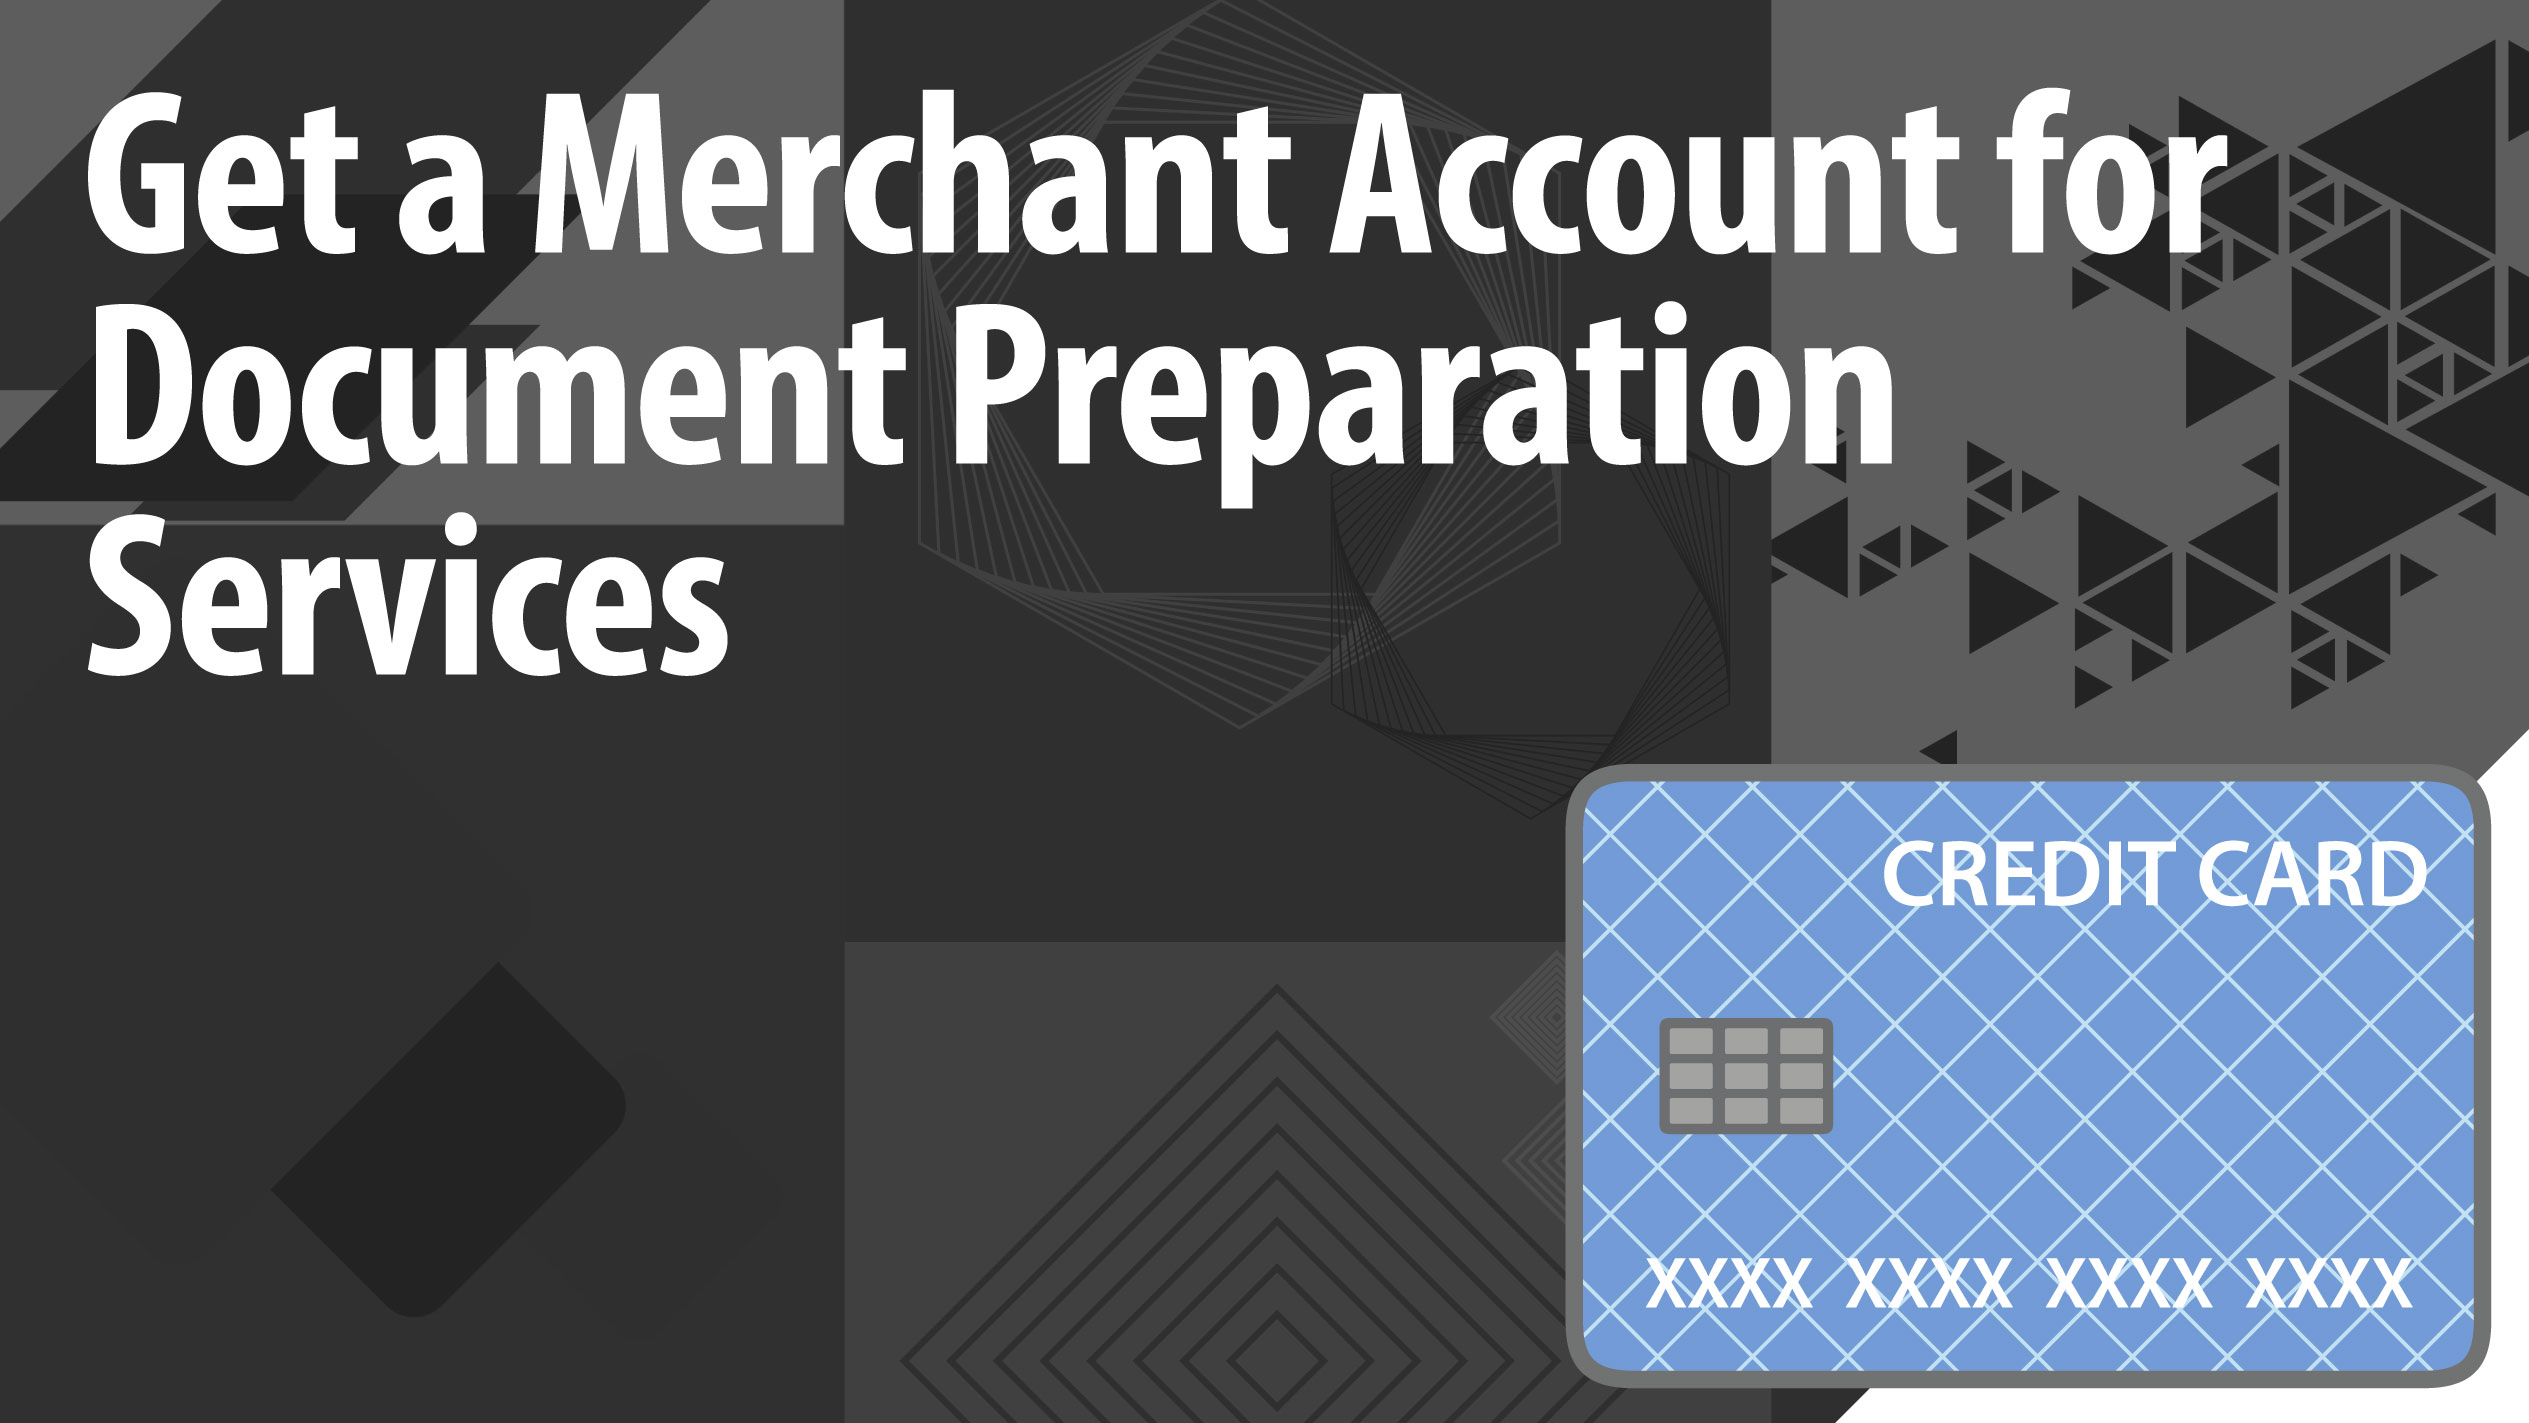 The Best Way to Get a Merchant Account- Doc Prep Services